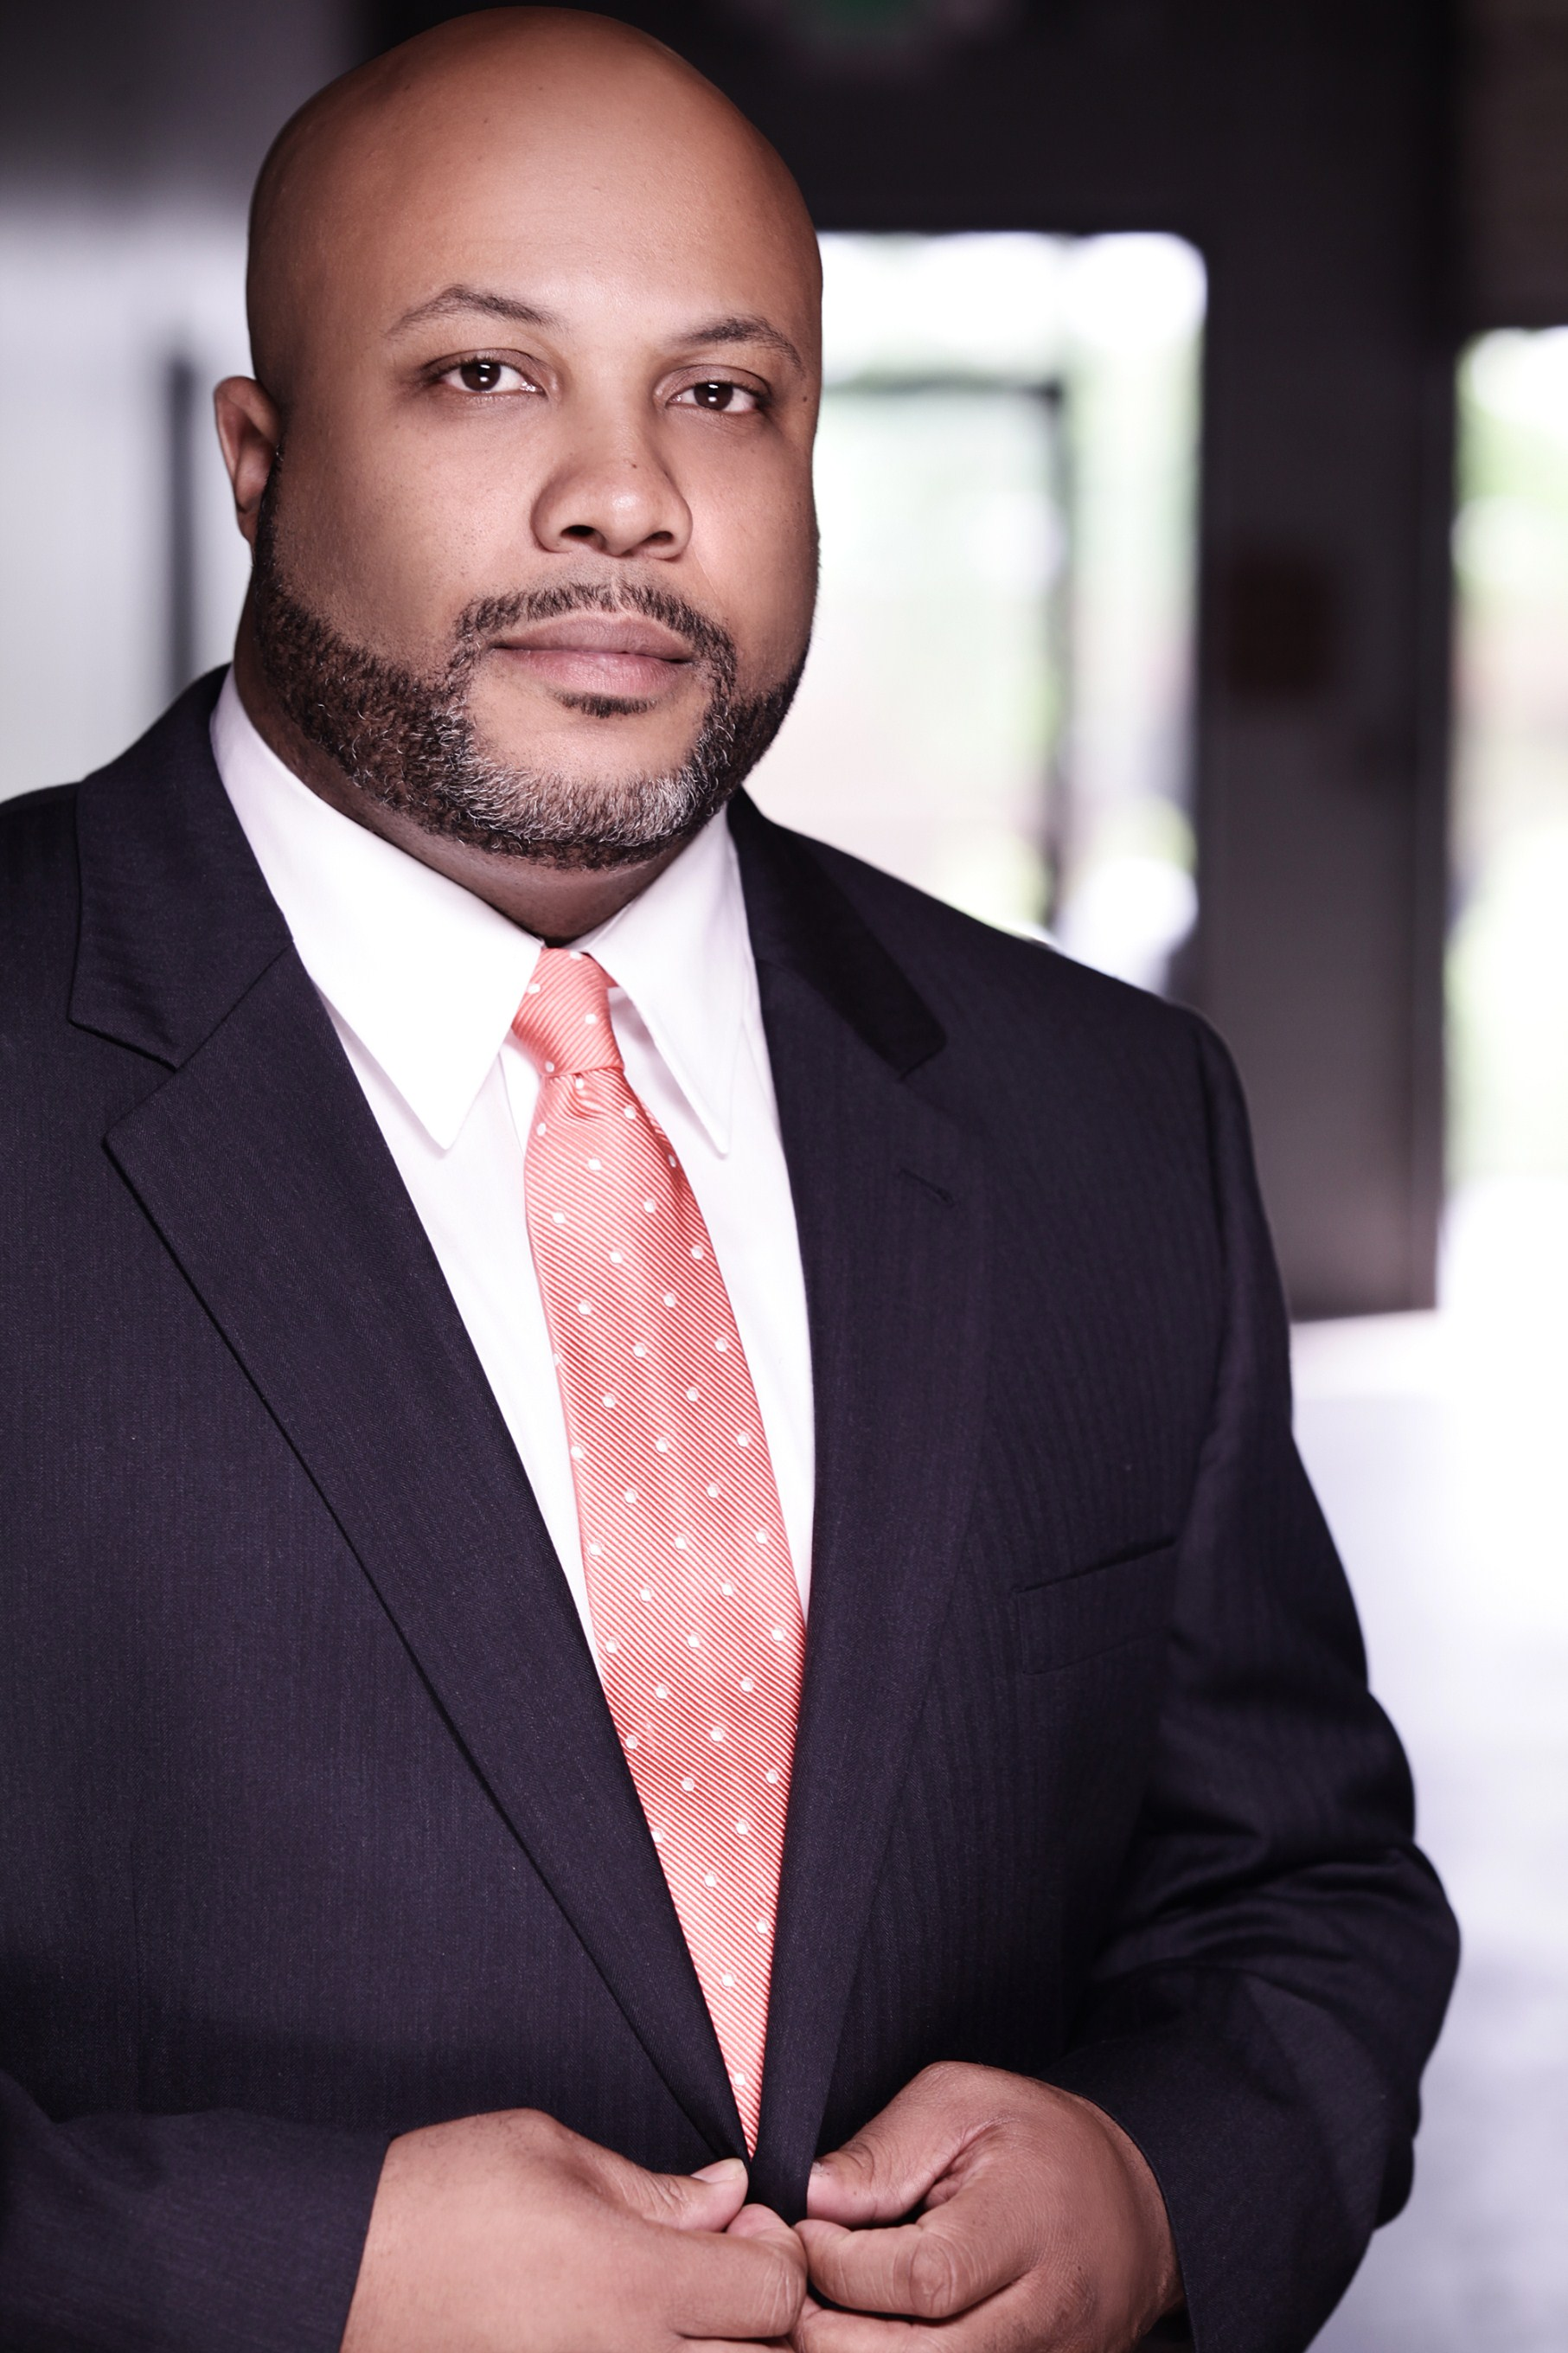 ORLANDO J. MAYO, ESQ. Orlando J. Mayo represents a broad array of businesses and individuals in business litigation, criminal defense, regulatory investigations, and serious personal injury matters.